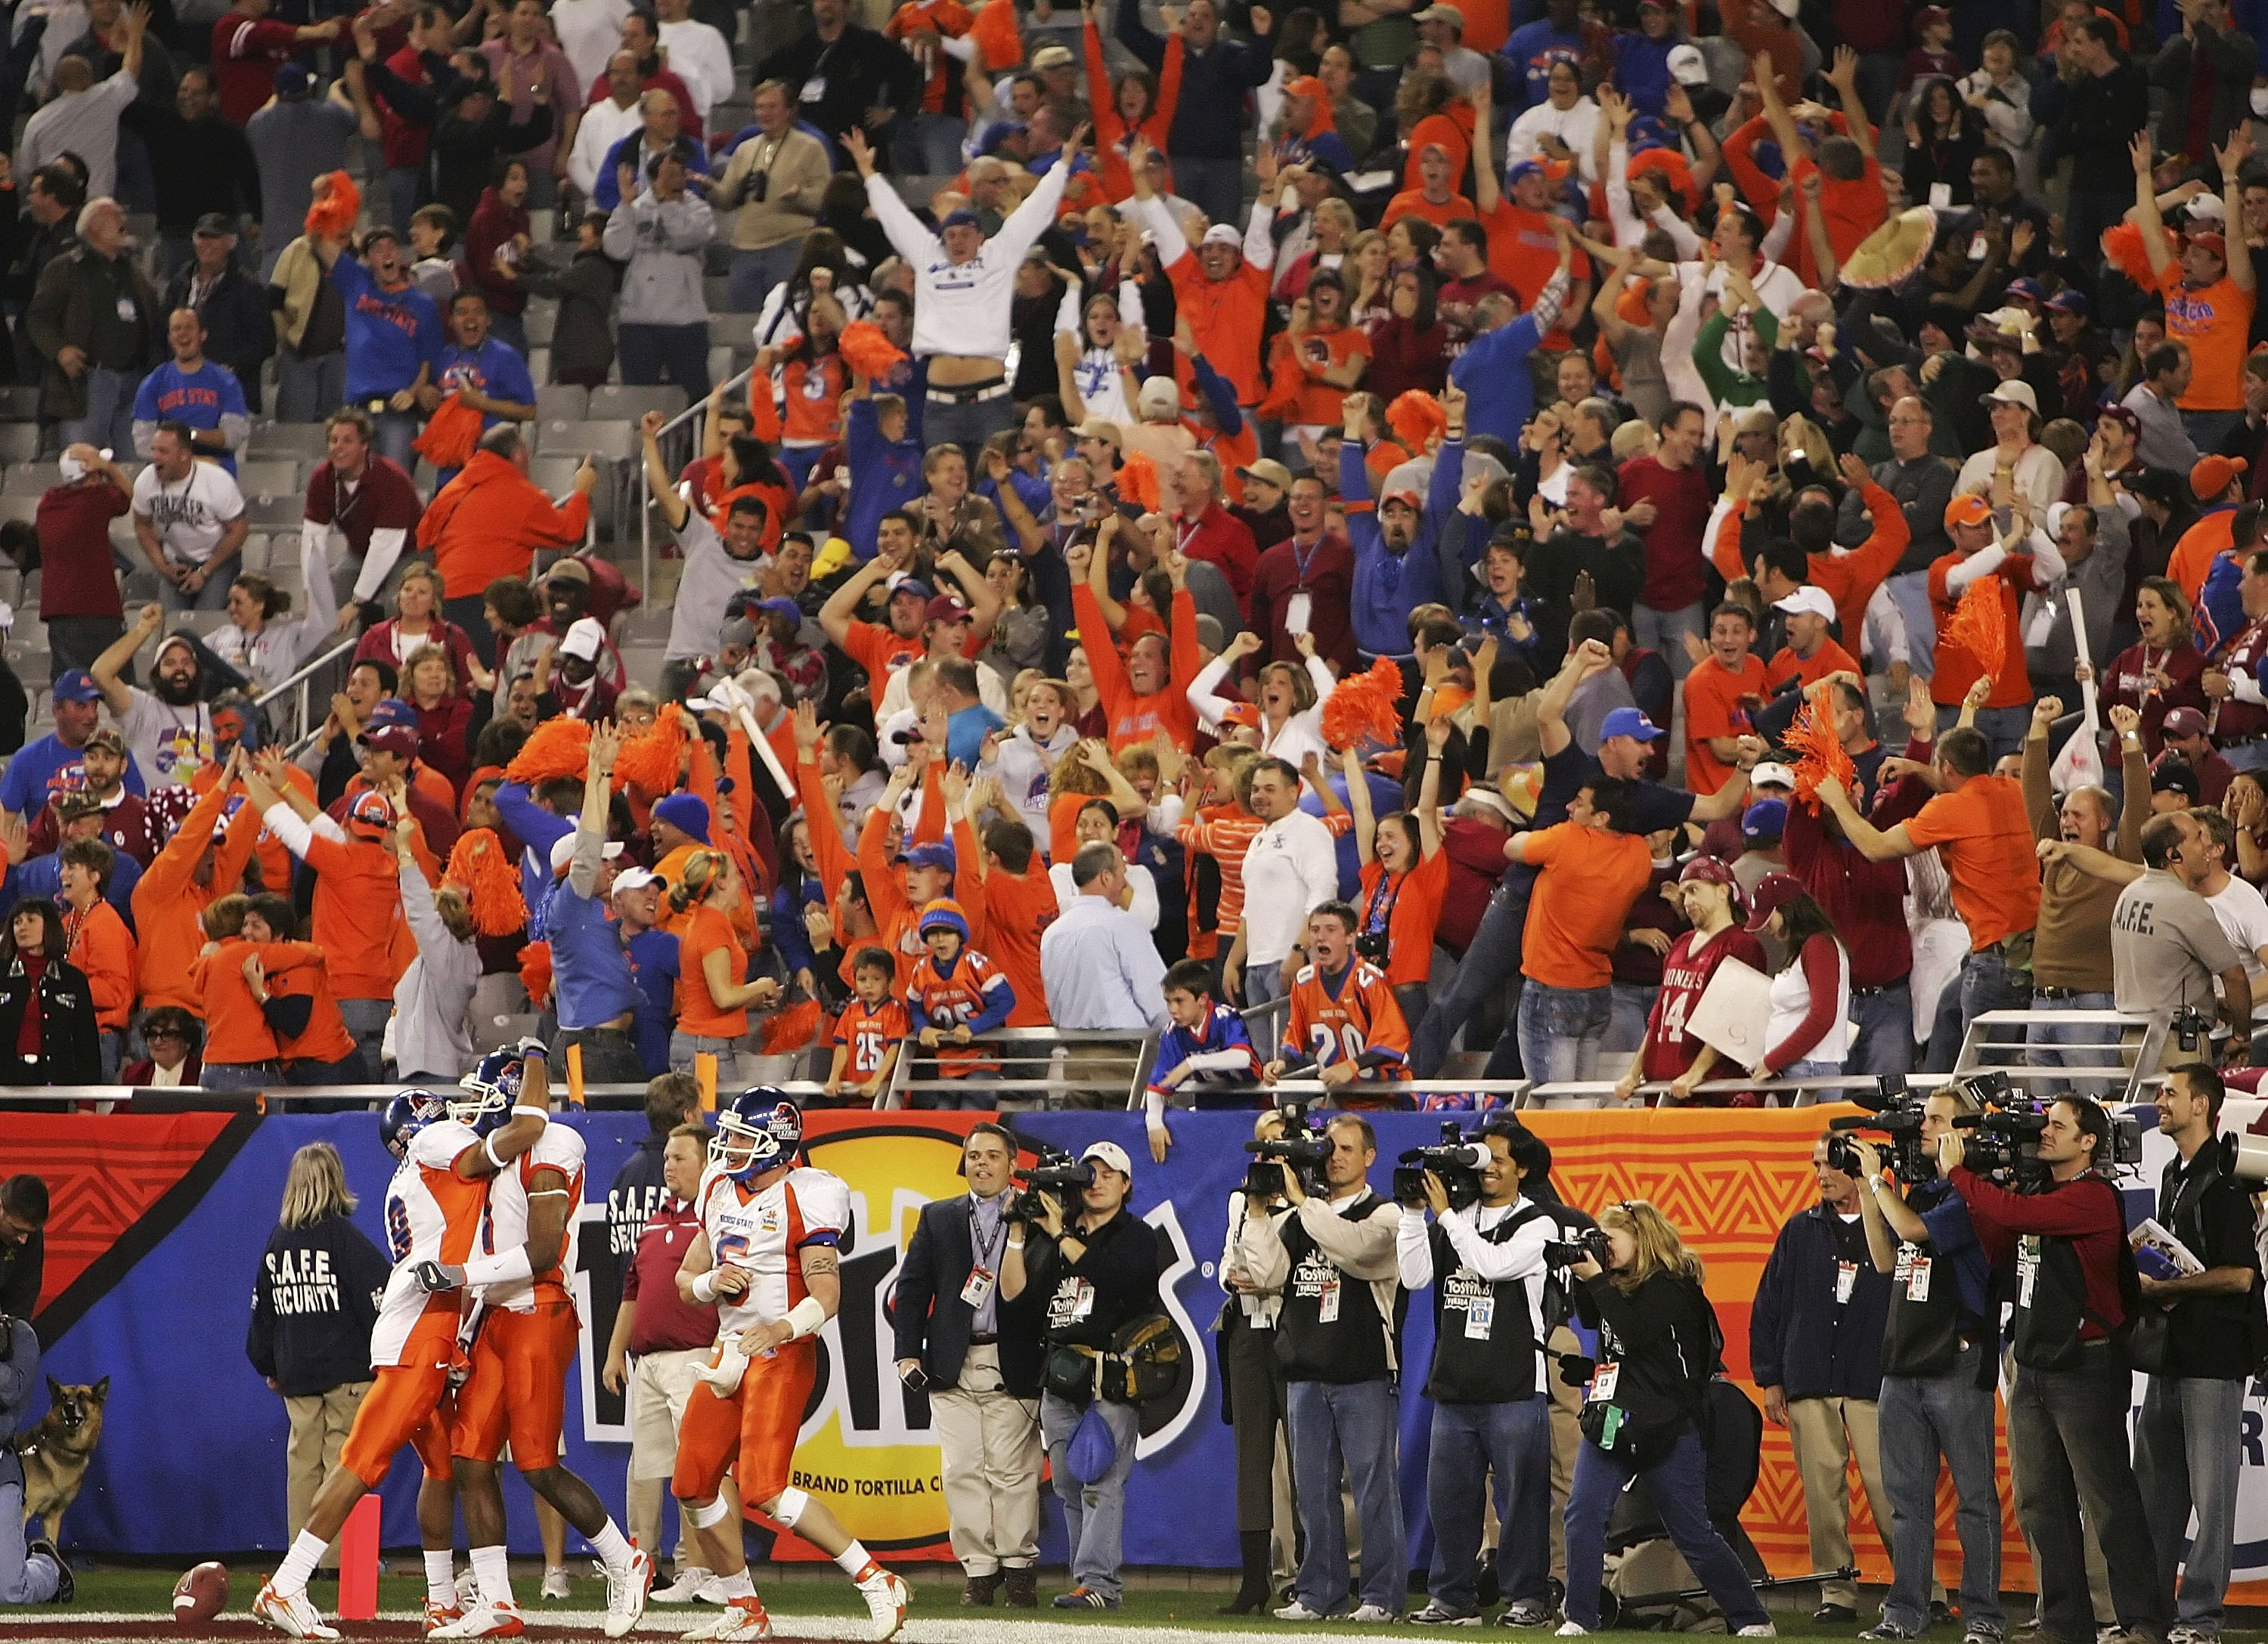 GLENDALE, AZ - JANUARY 01:  (L-R) Jeremy Childs #9, Jerad Rabb #1 and Jared Zabransky #5 of the Boise State Broncos celebrates the Rabb touchdown late in the fourth quarter against the Oklahoma Sooners at the Tostito's Fiesta Bowl at University of Phoenix